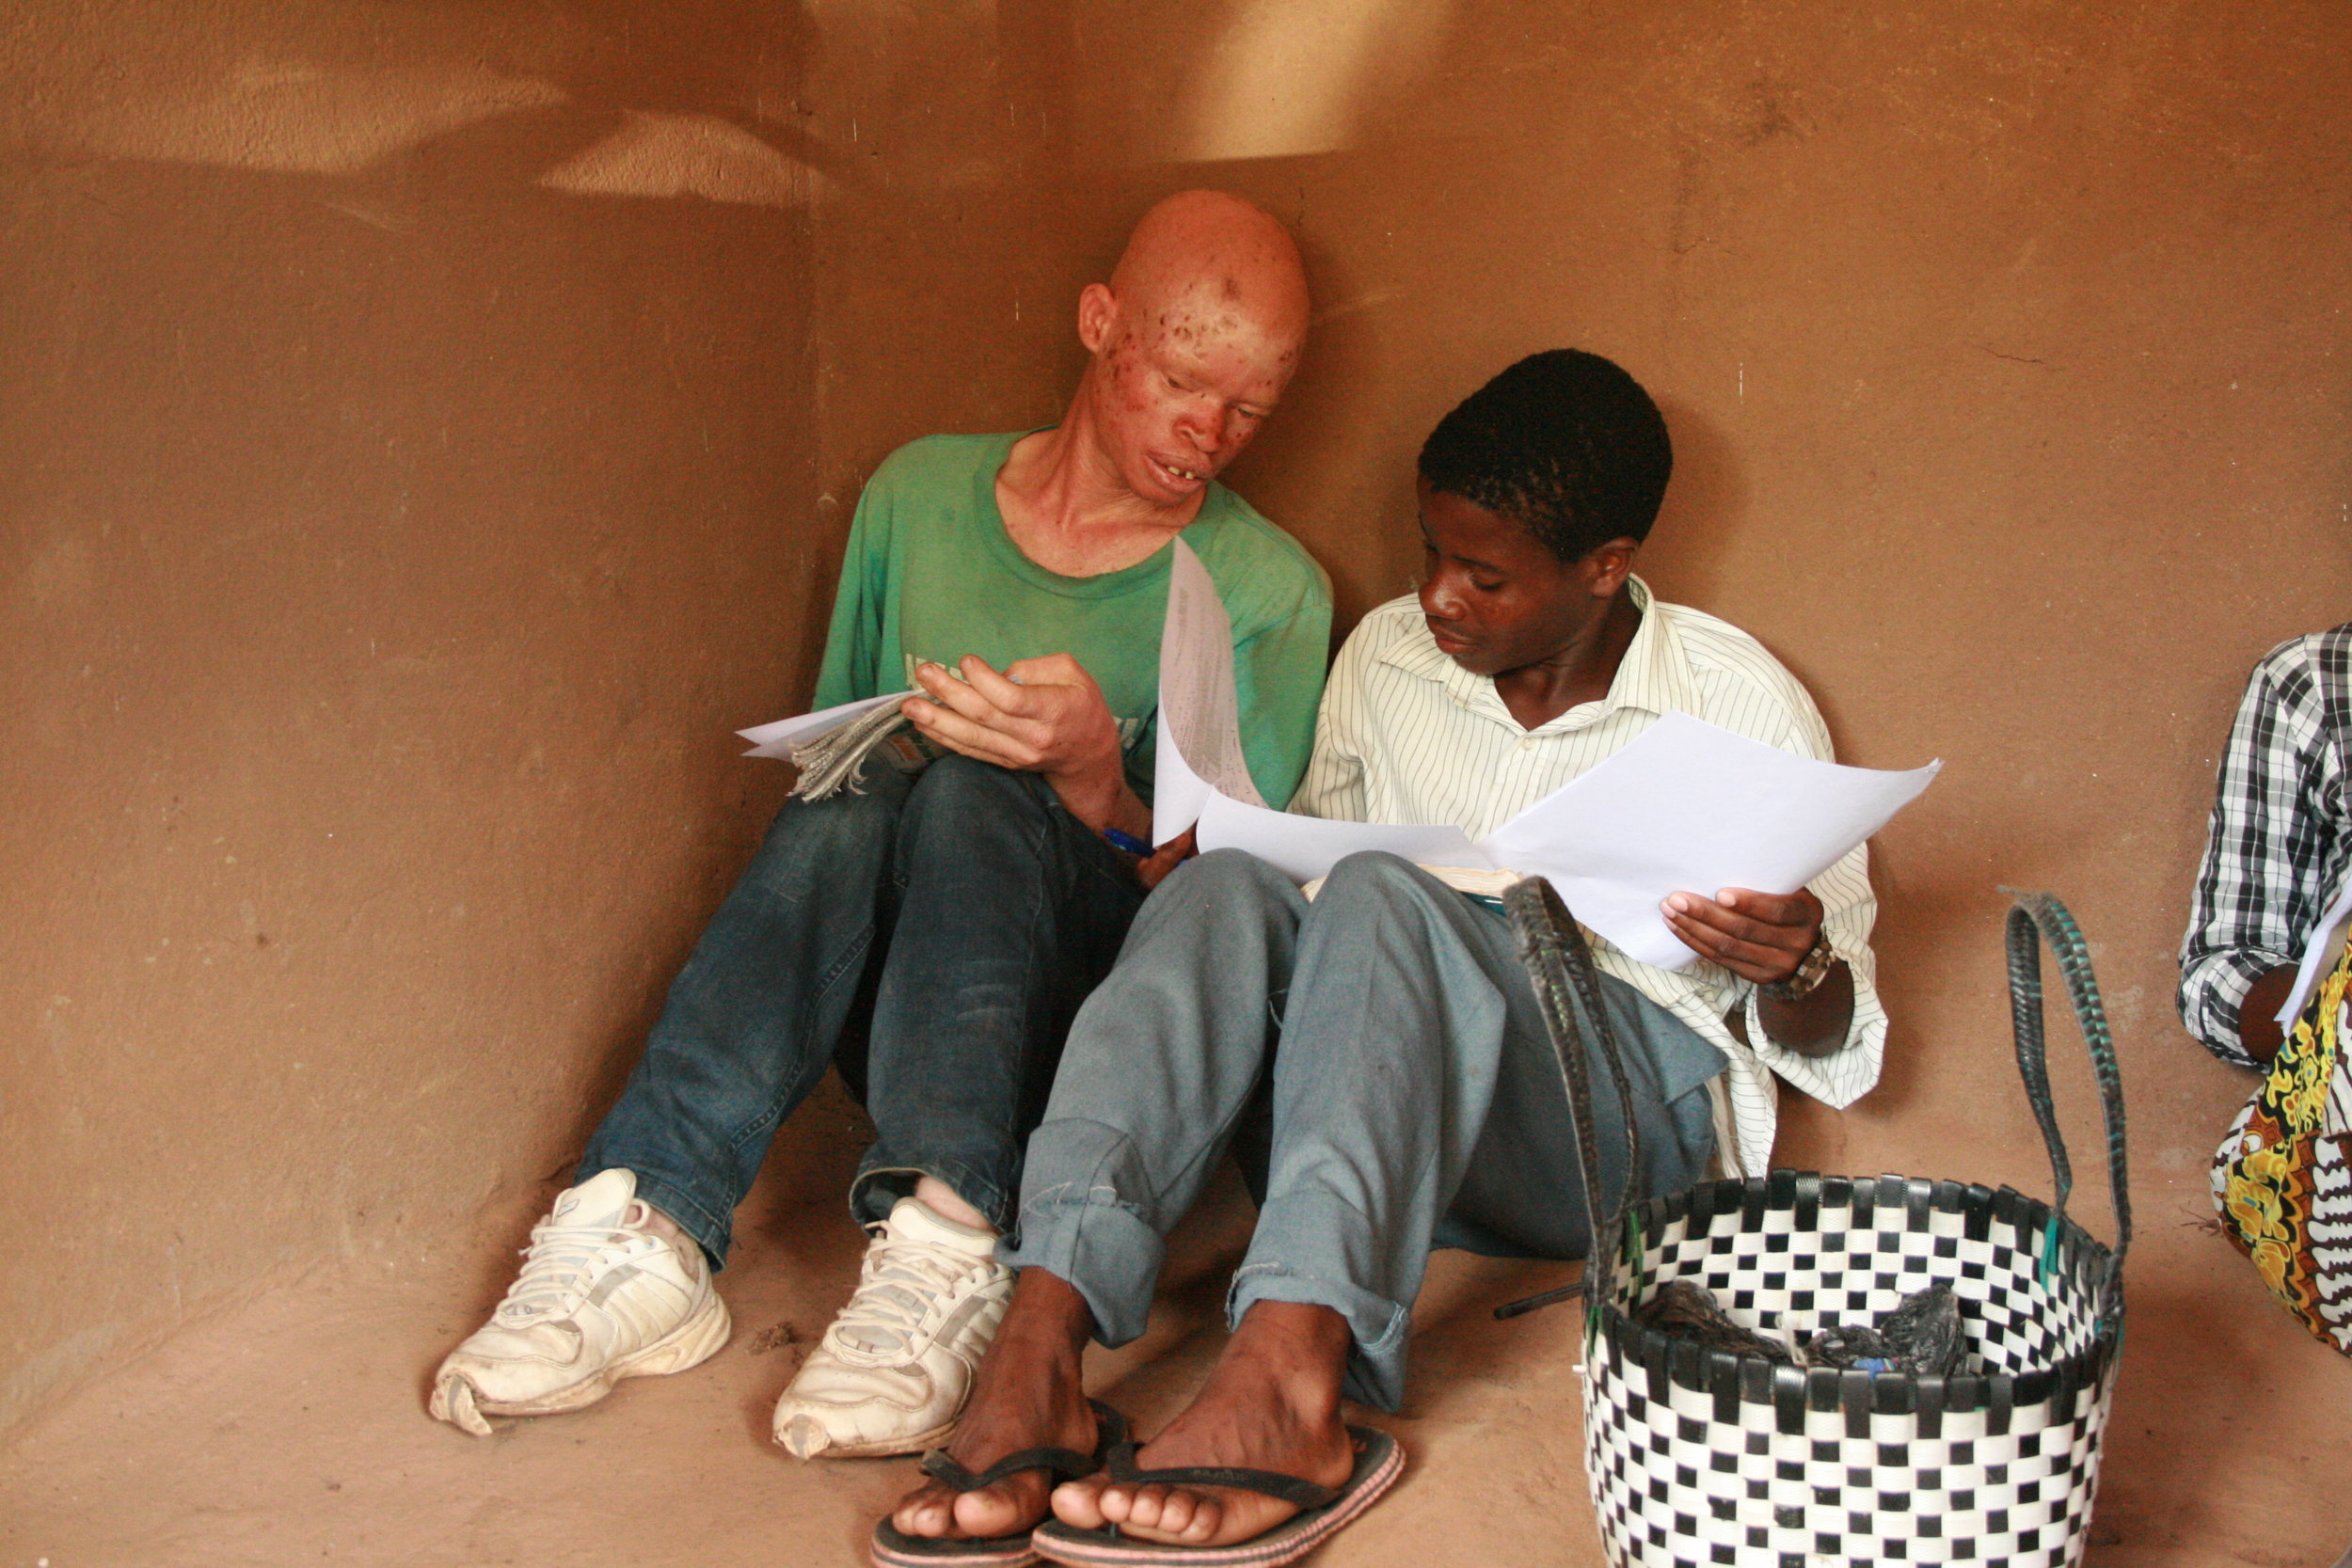 Two Secondary students, who are a part of the Standard Sponsorship Project, study together among their peers.